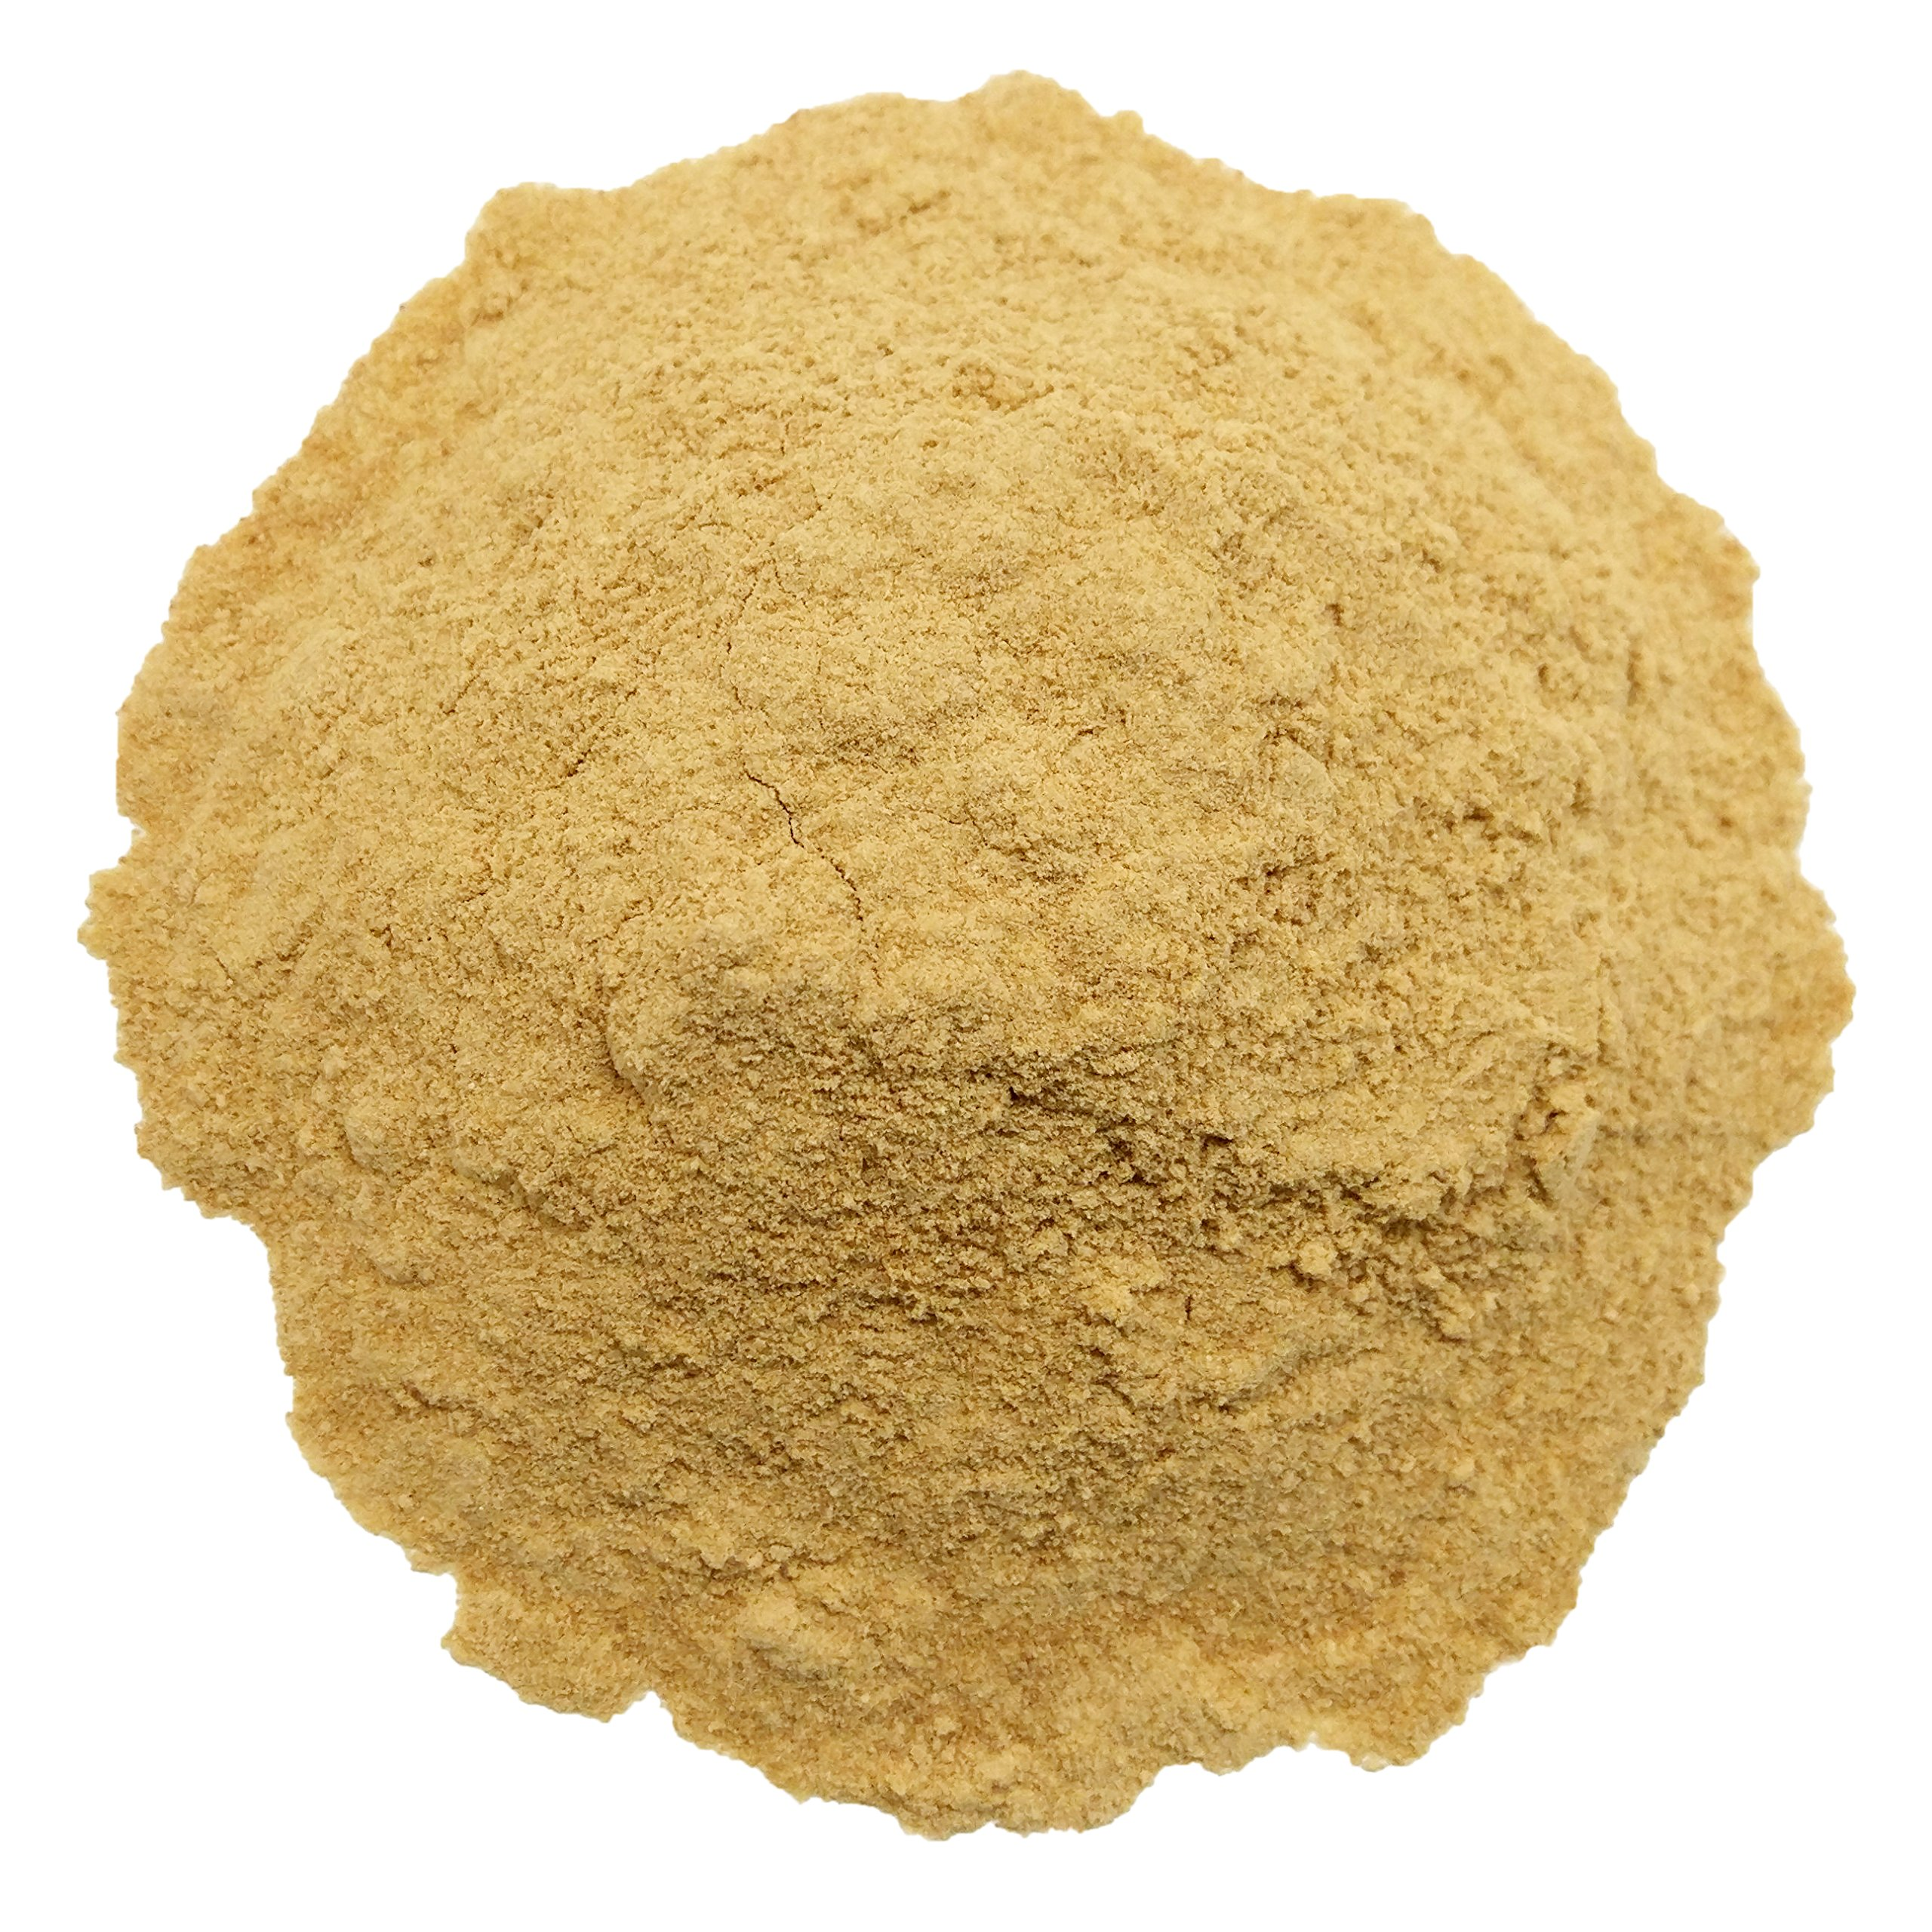 Organic Maca Root Powder (Non-GMO, Kosher, Raw Ground, Flour, Bulk) (8 Pounds) by Food to Live (Image #3)